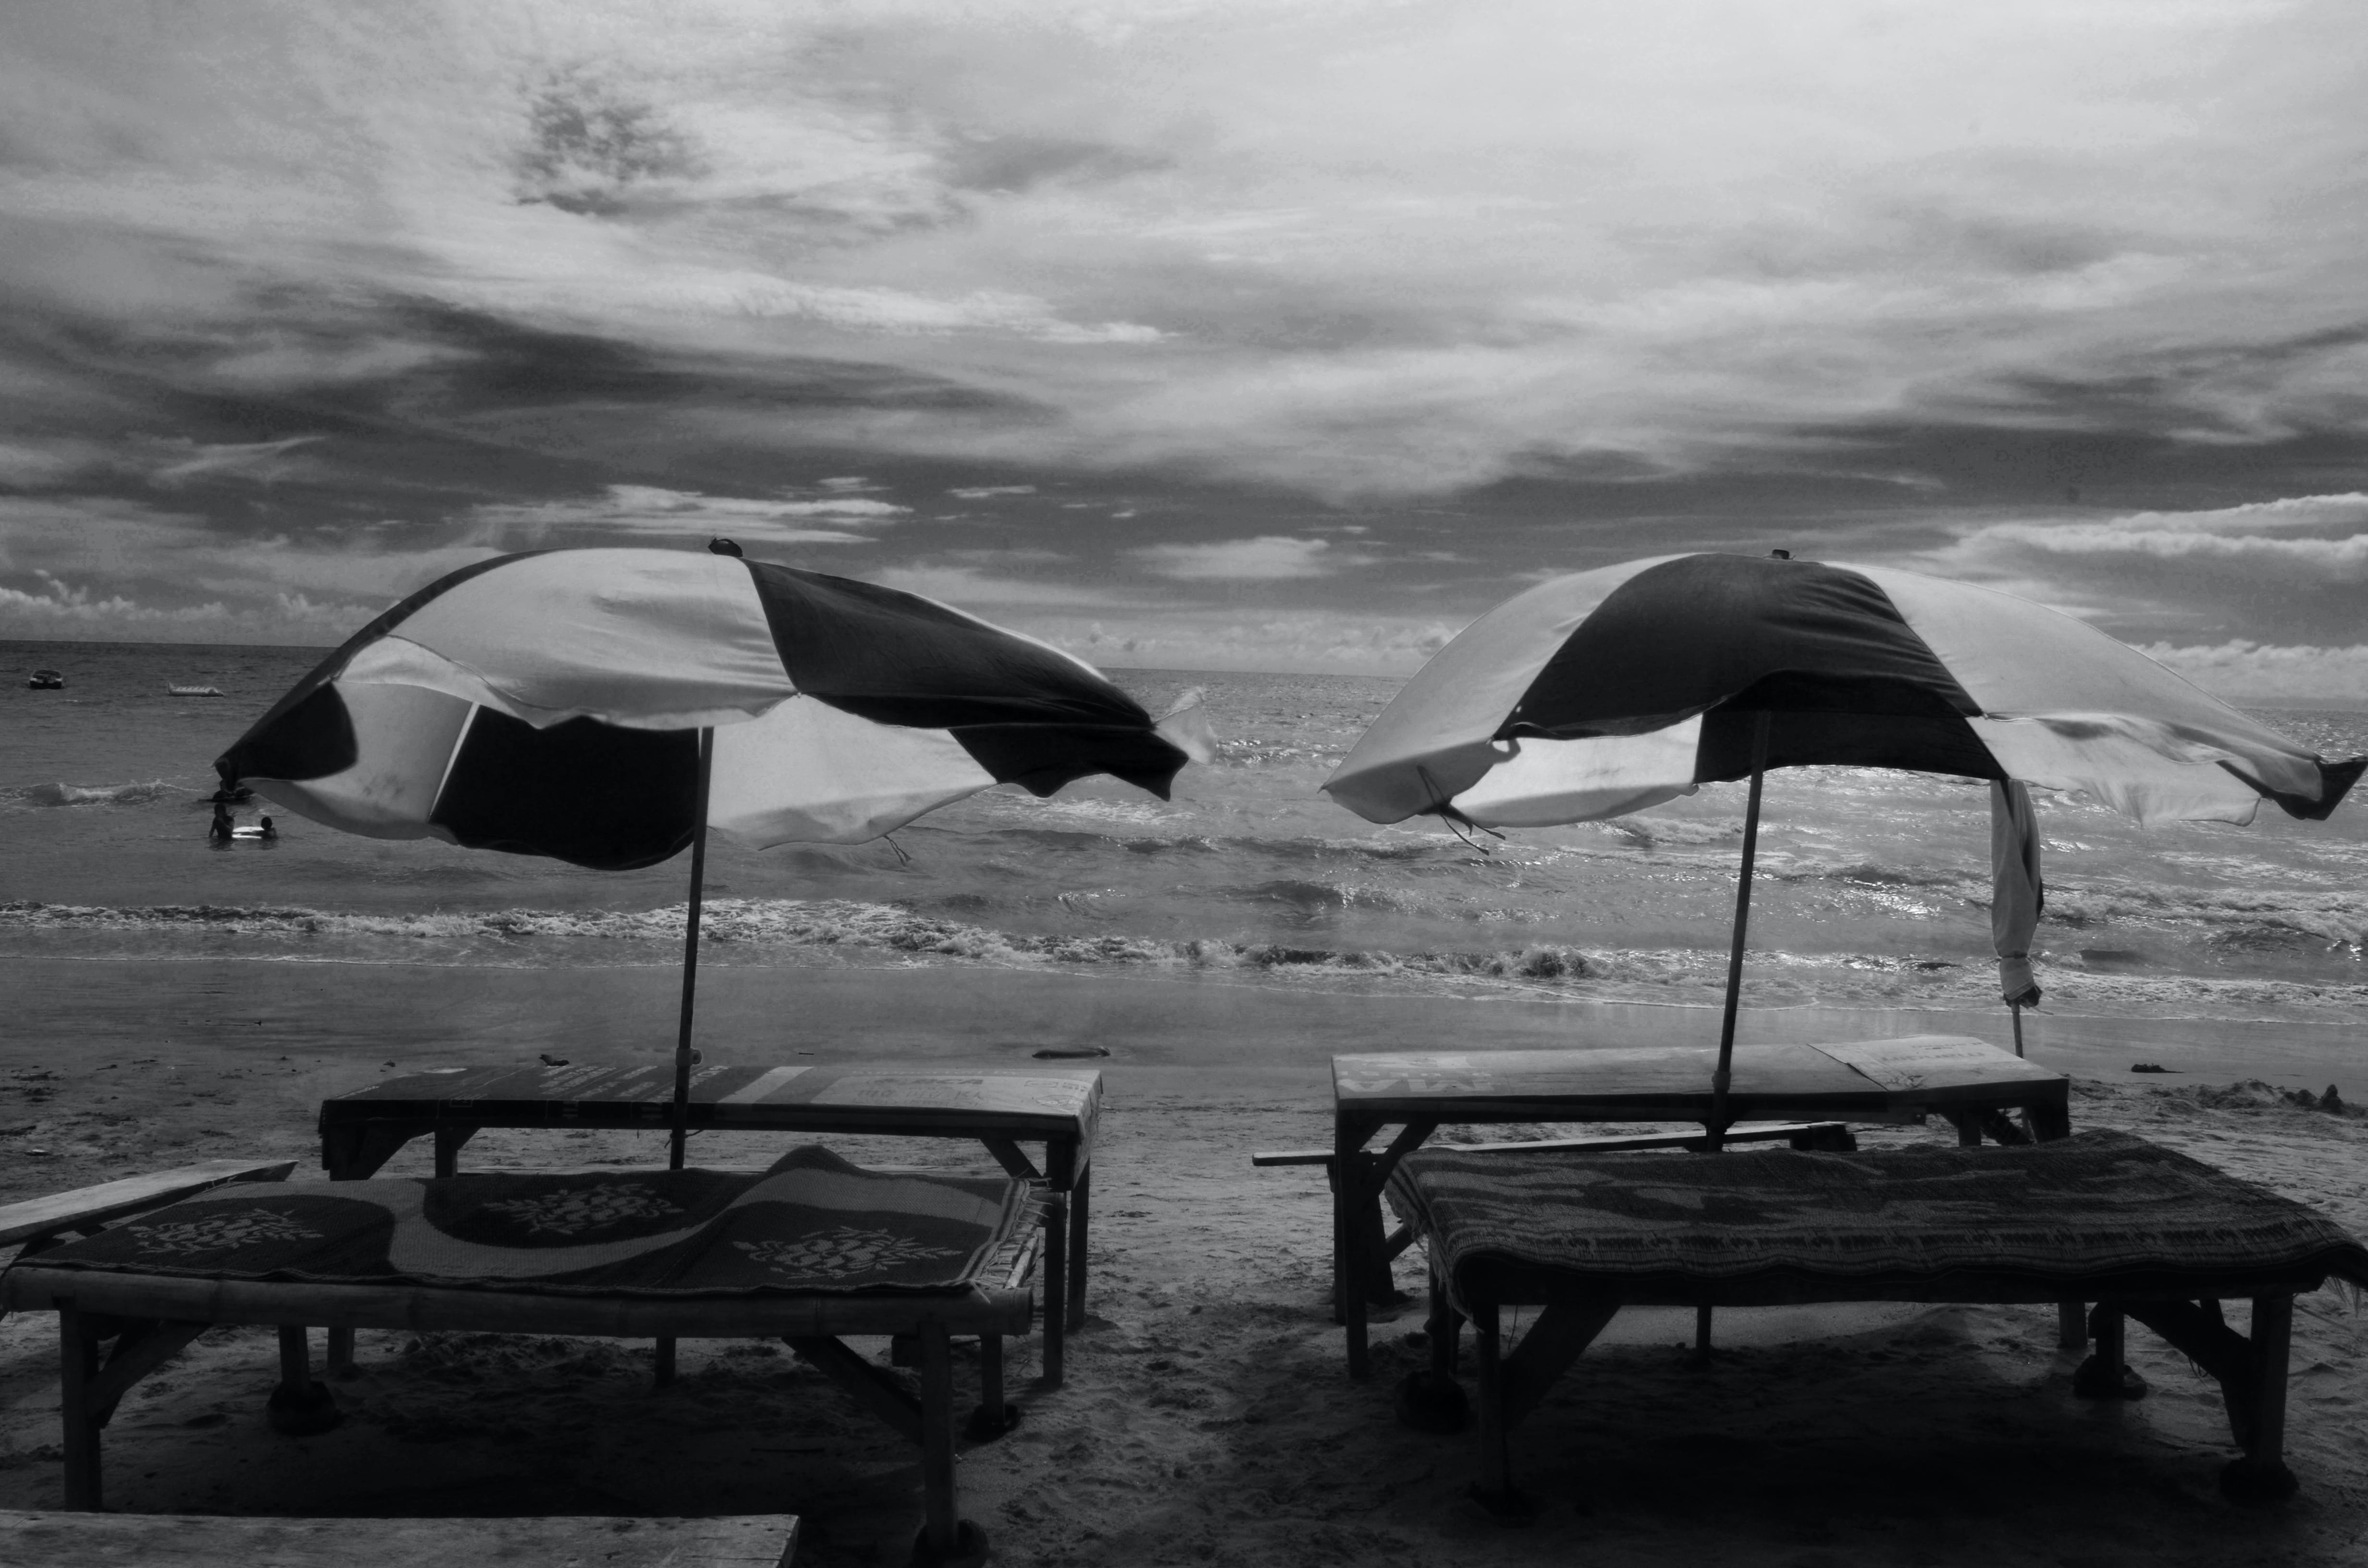 Grayscale Photography of Two Picnic Tables on Seashore